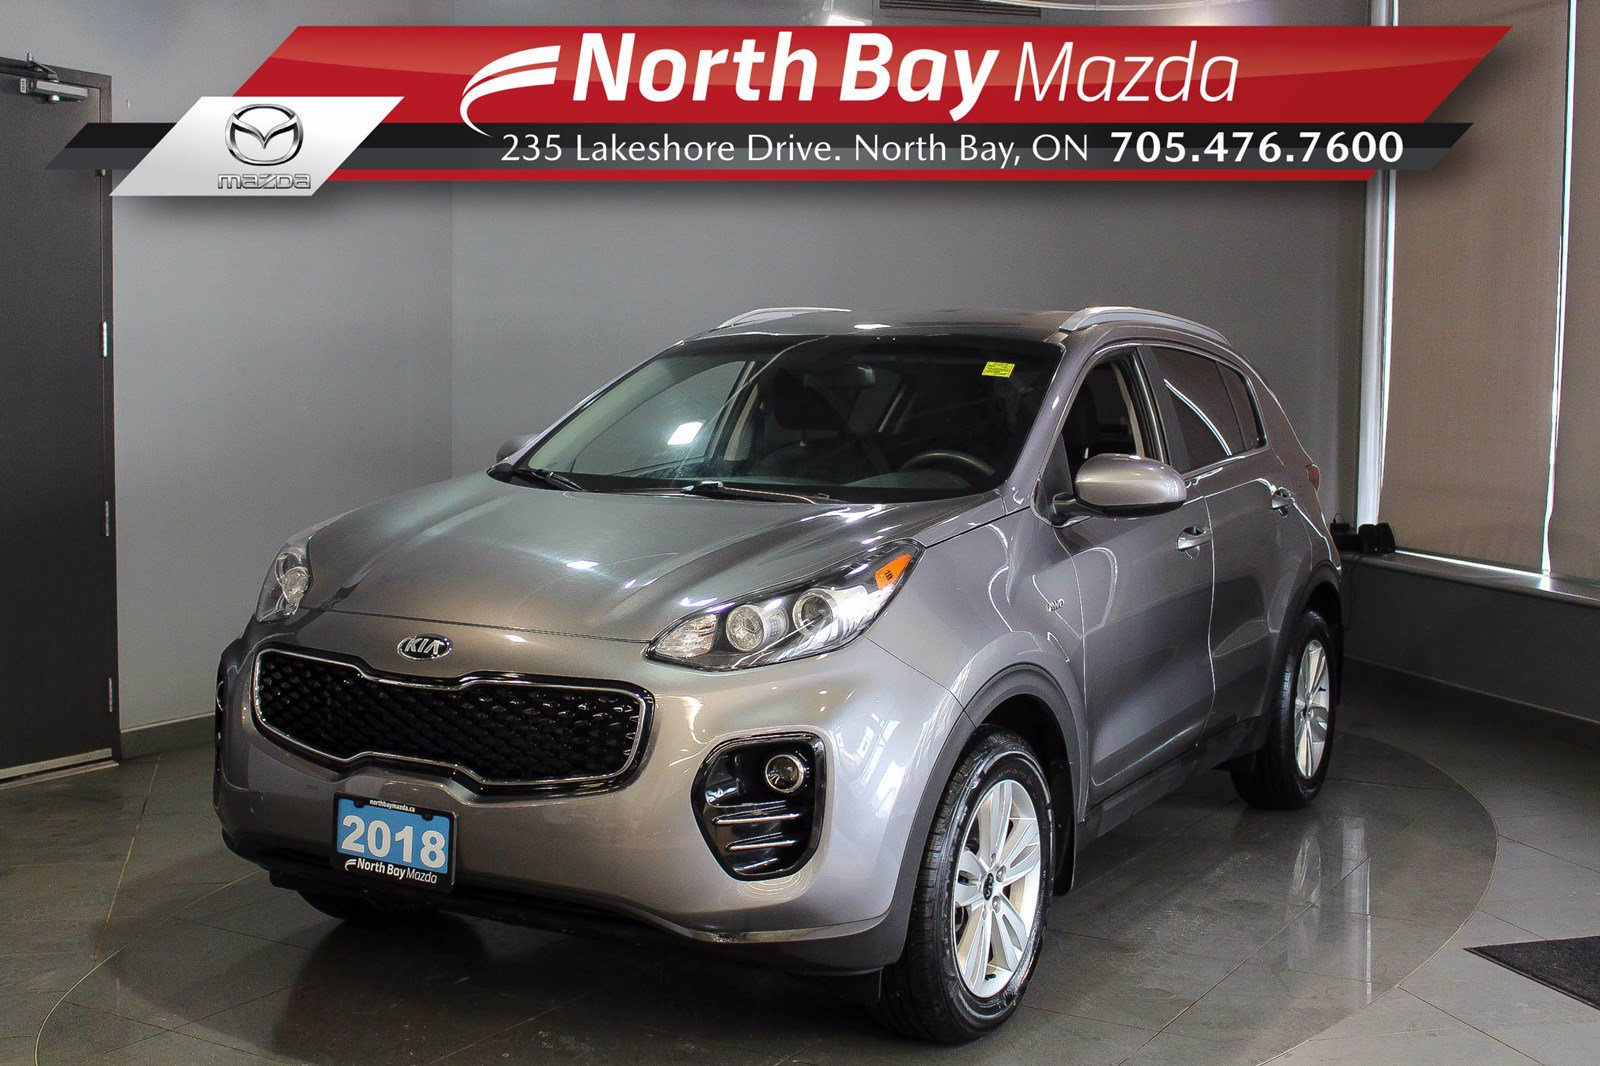 Pre-Owned 2018 Kia Sportage LX AWD with Heated Seats, Bluetooth, Cruise